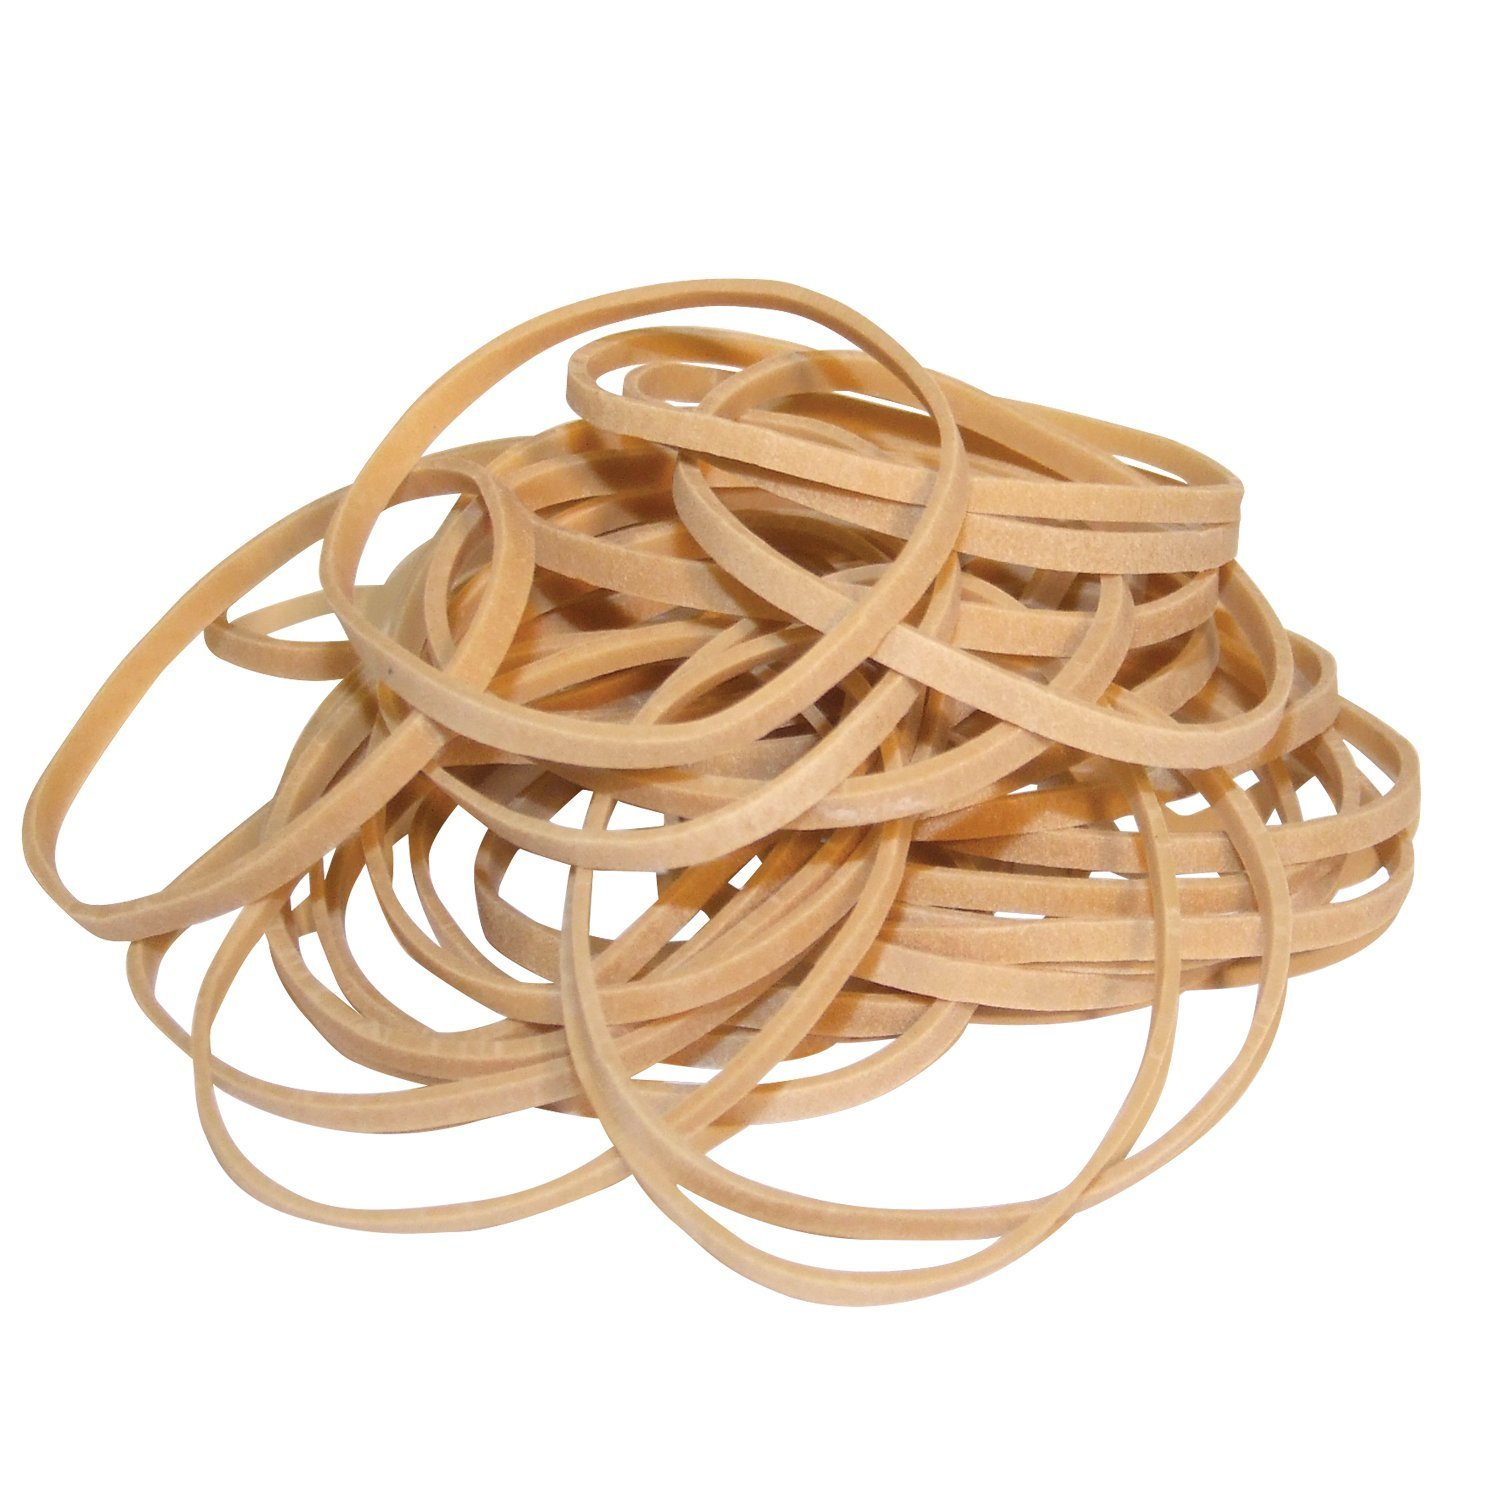 Value Rubber Bands (No 69) 6x150mm 454g